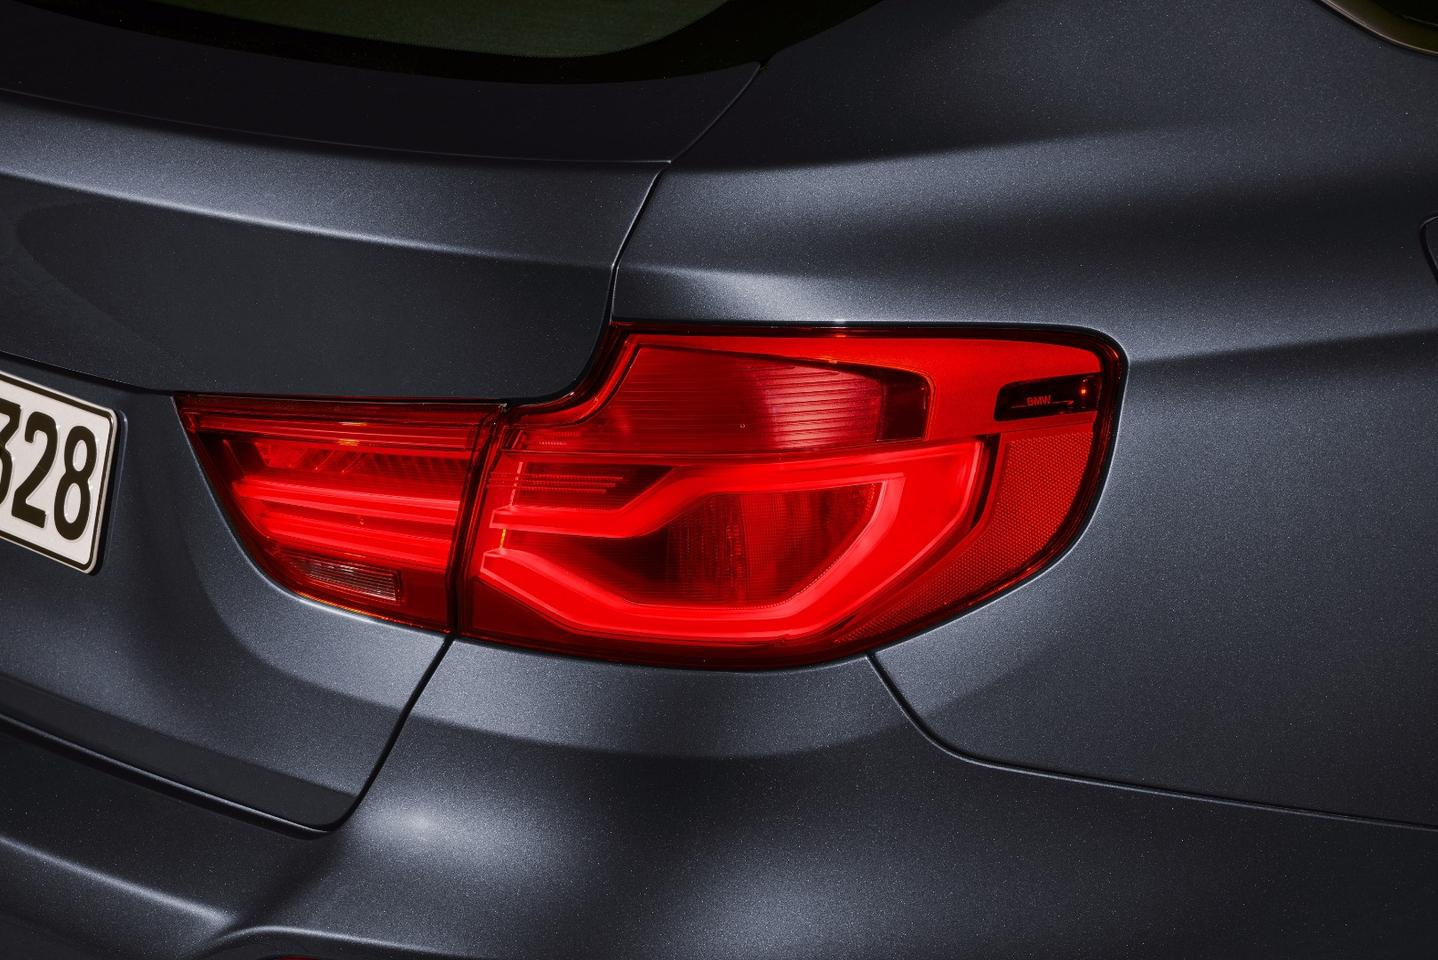 BMW's light signatures have been applied to the 3 Series GT